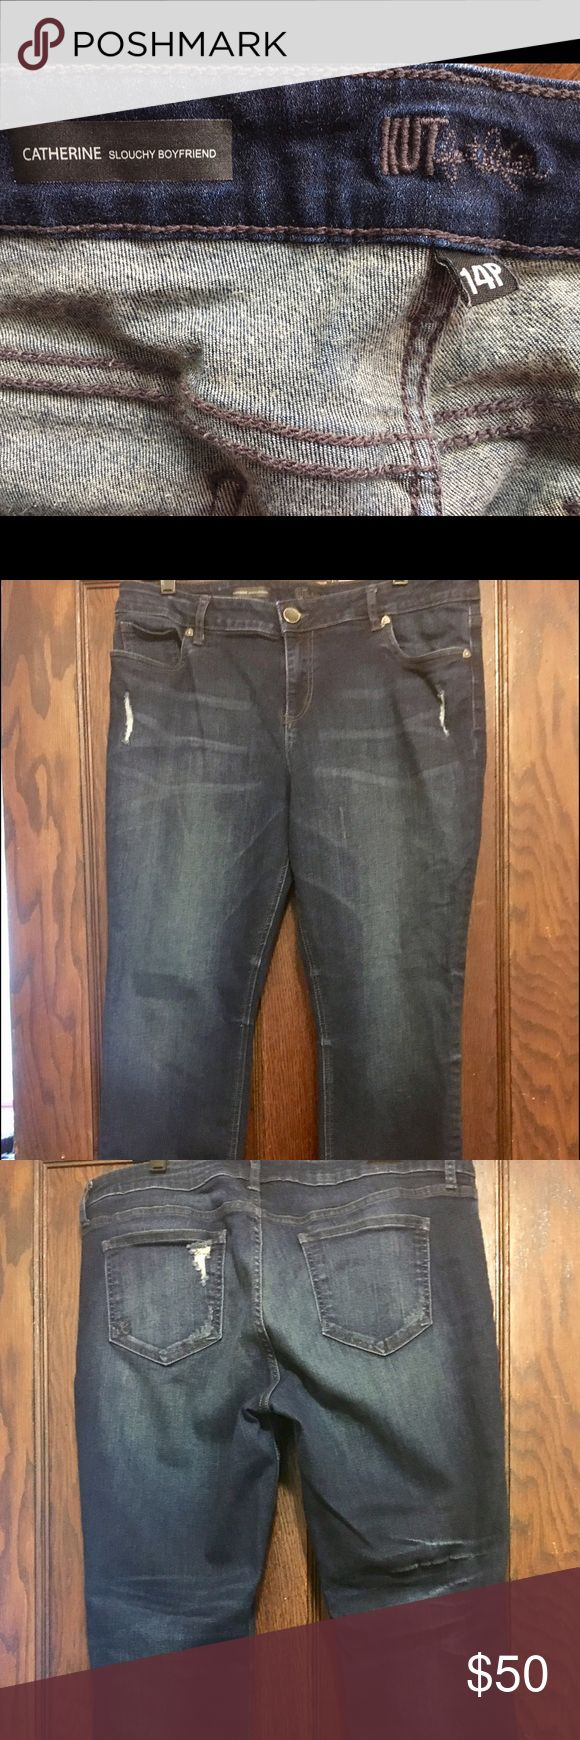 KFTK POPULAR Catherine Boyfriend Jeans. Like New! Kut From The Kloth POPULAR Catherine Boyfriend Jeans. Only worn a few times. Basically New!  The style came with the tears. These are tough to find. You will not be disappointed! Kut From The Kloth Jeans Boyfriend